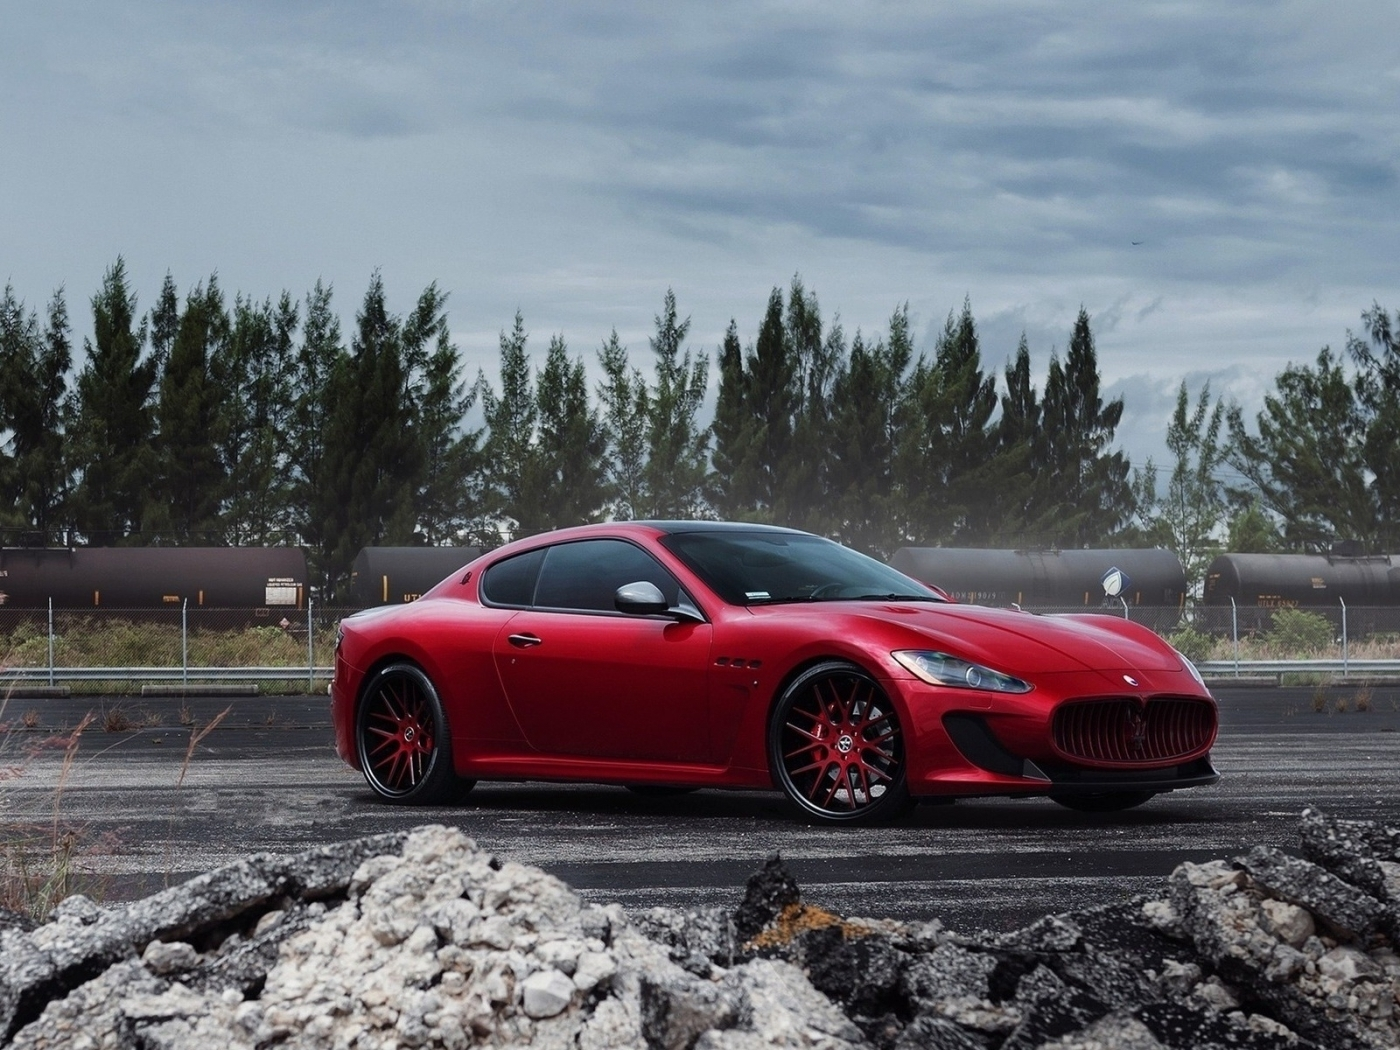 30870 download wallpaper Transport, Auto, Maserati screensavers and pictures for free